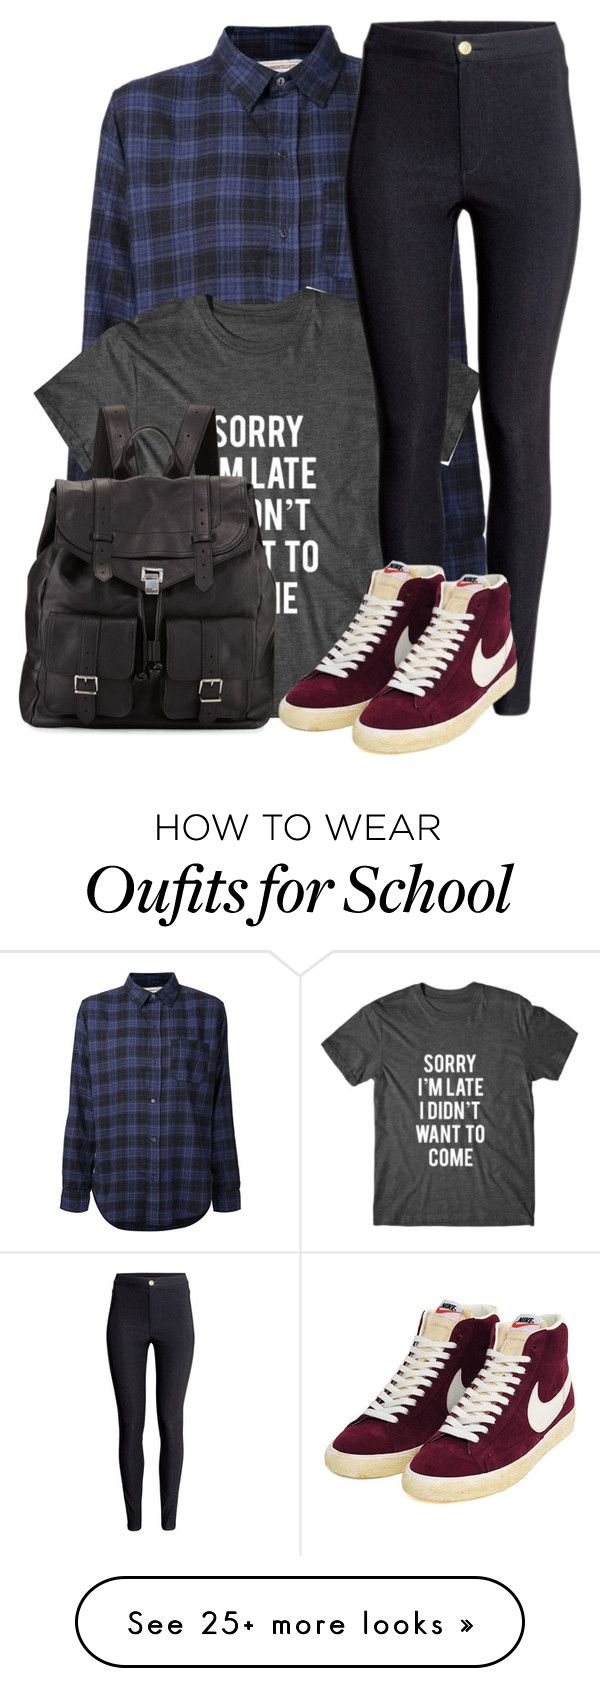 """school"" by adele-adik on Polyvore featuring Current/Elliott, H&M, NIKE and Proenza Schouler"